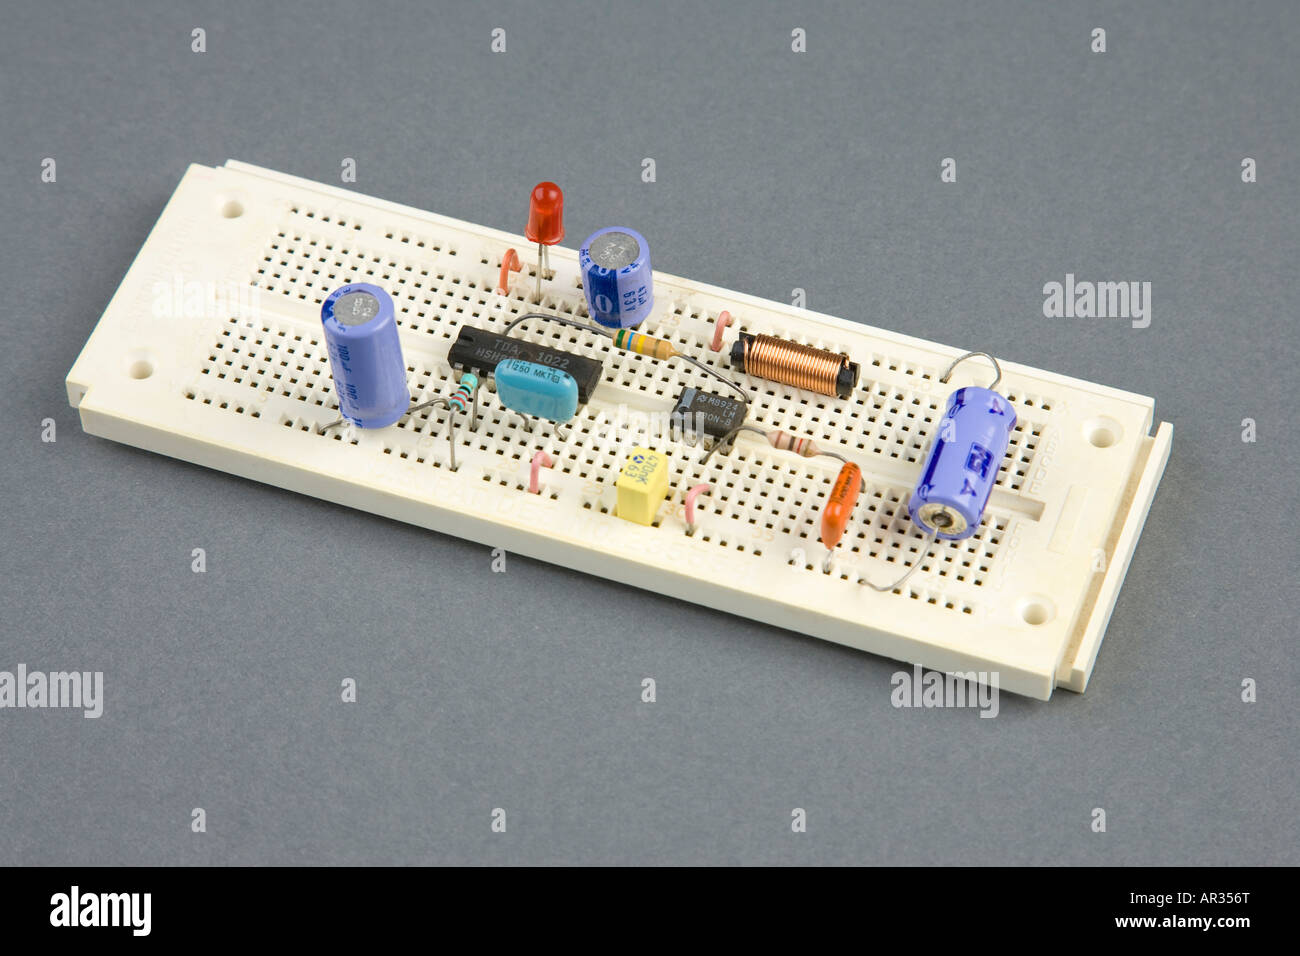 Testing Prototype Of Electrical Circuit On Breadboard With Voltmeter